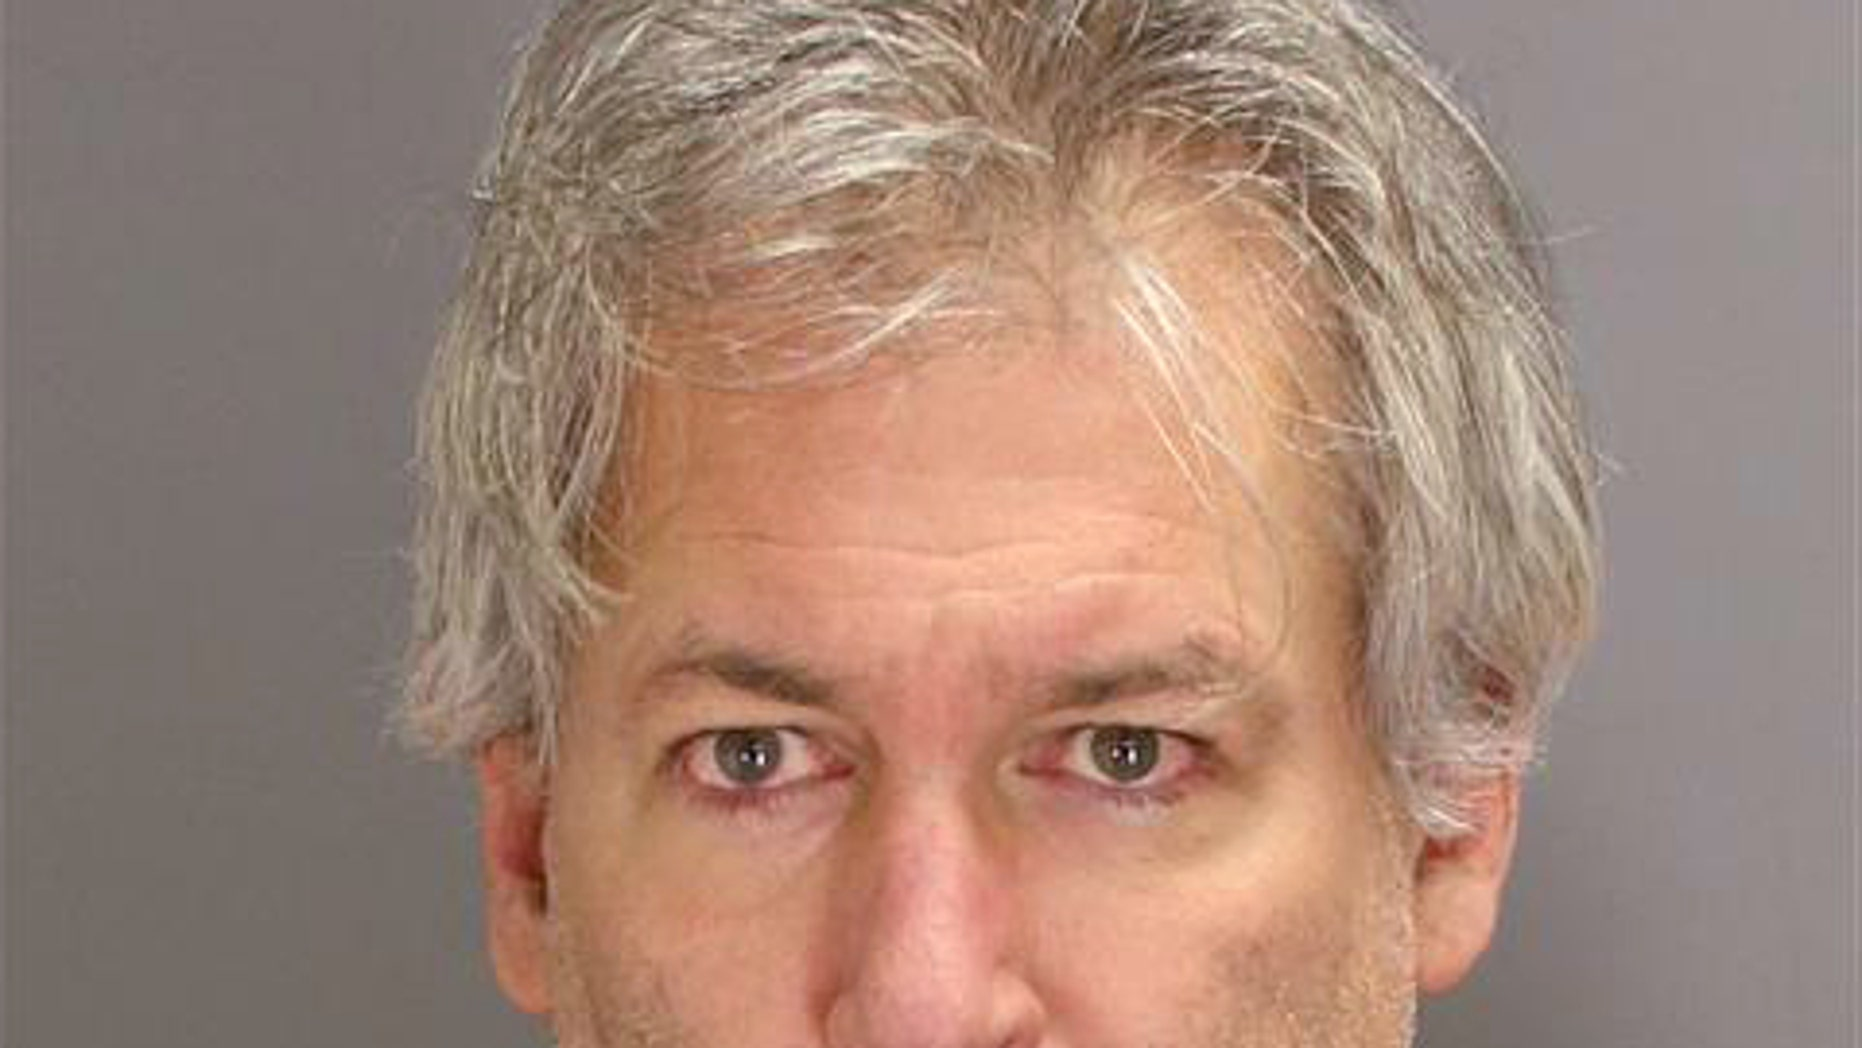 This undated booking photo released by the Oakland County Sheriff's Department shows Jeffrey B. Maurer. A Rochester Hills, Mich., district judge ruled Tuesday, Feb. 10, 2015 that there's enough evidence to try the 53-year-old Maurer in Oakland County Circuit Court on first-degree murder charges in the beating deaths of his 87-year-old father and 85-year-old mother.  (AP Photo/Oakland County Sheriffs Department)